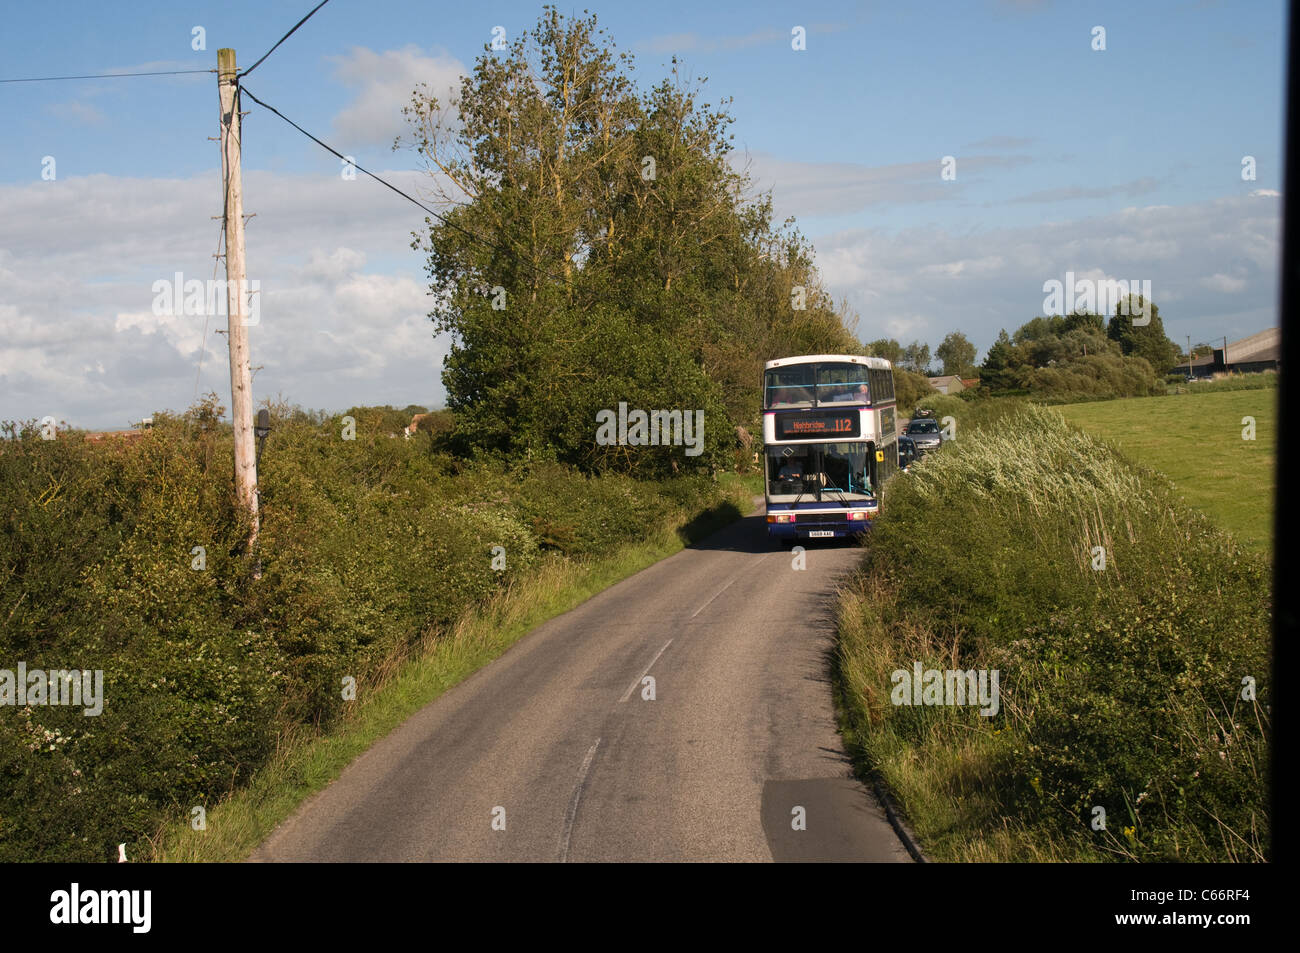 A double deck bus traveling down a  country road has pulled over to the nearside to allow a bus traveling the other - Stock Image